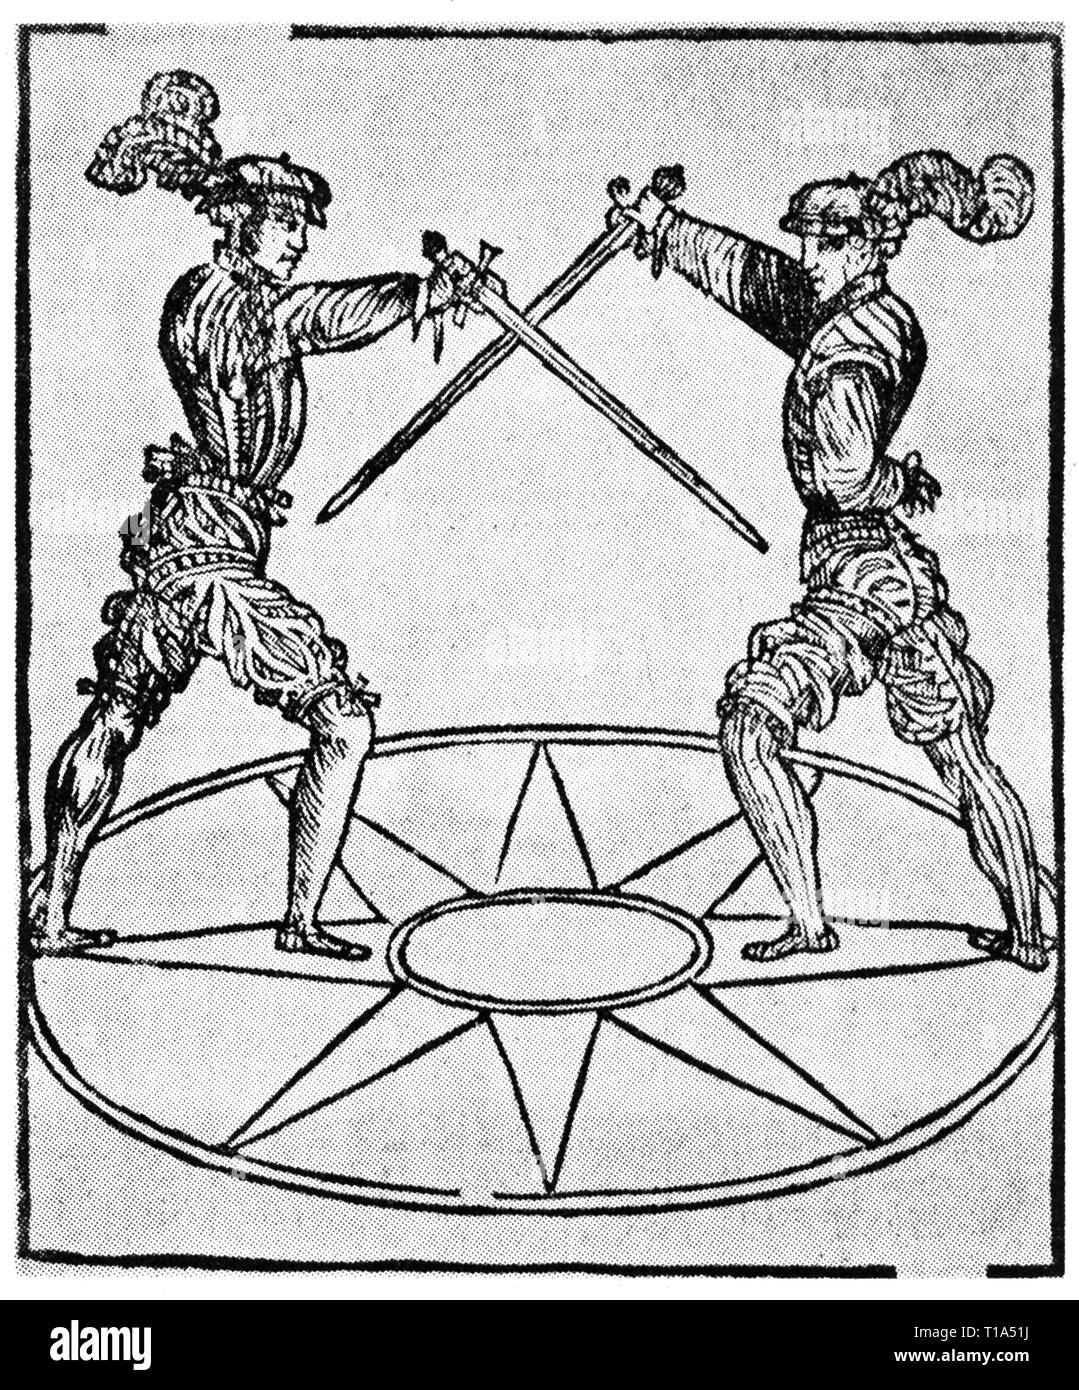 sports, fencing, fencing bout, woodcut, from: Achille Marozzo (1484 - circa 1550), Opera Nova, Modena, 1536, Additional-Rights-Clearance-Info-Not-Available - Stock Image